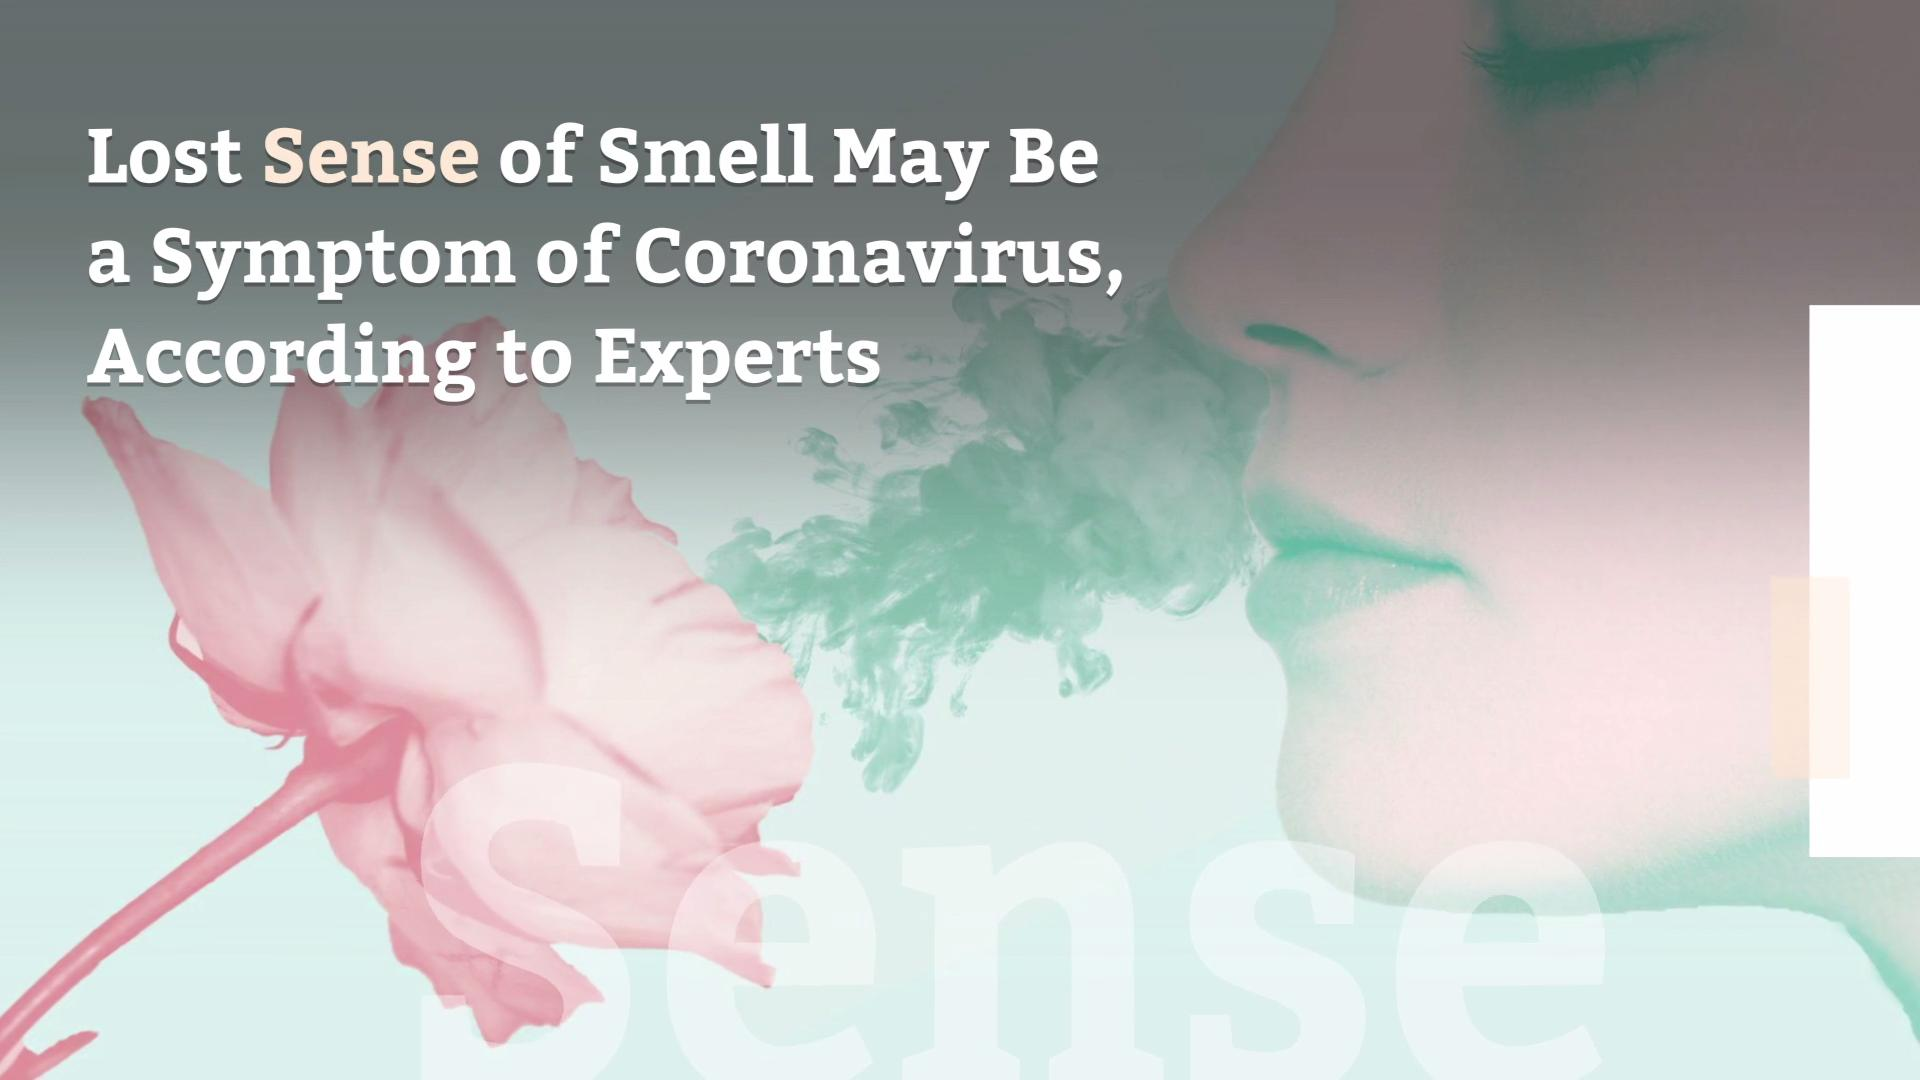 Lost Sense of Smell May Be a Symptom of Coronavirus, According to Experts